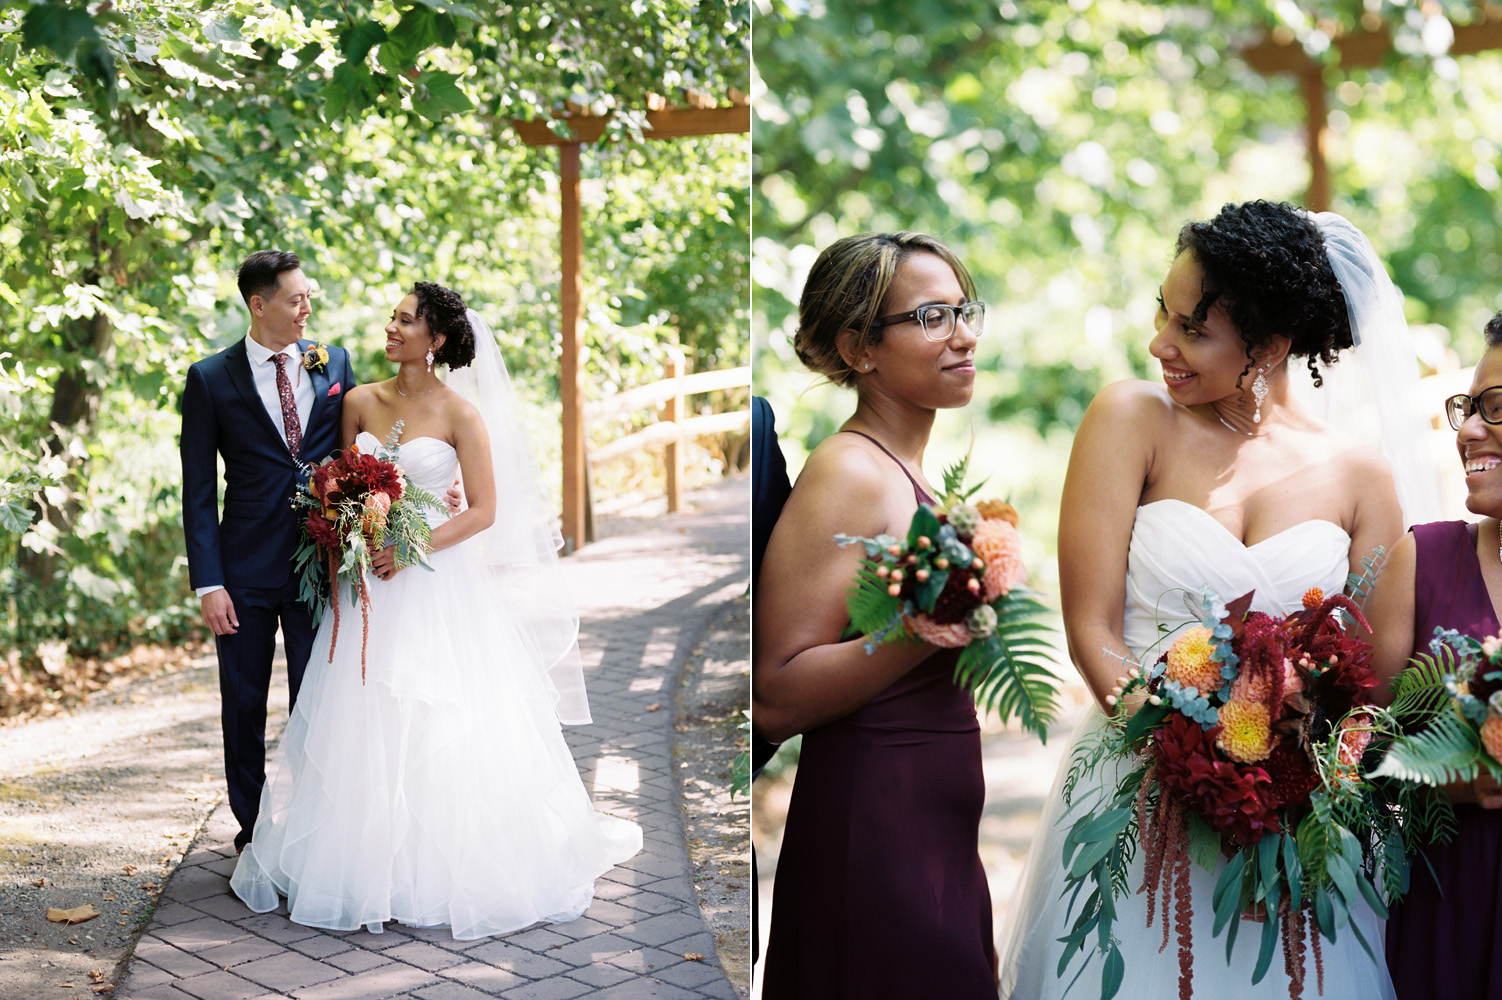 Seattle Burgundy and Navy Bridal Party Wedding Photography.jpg